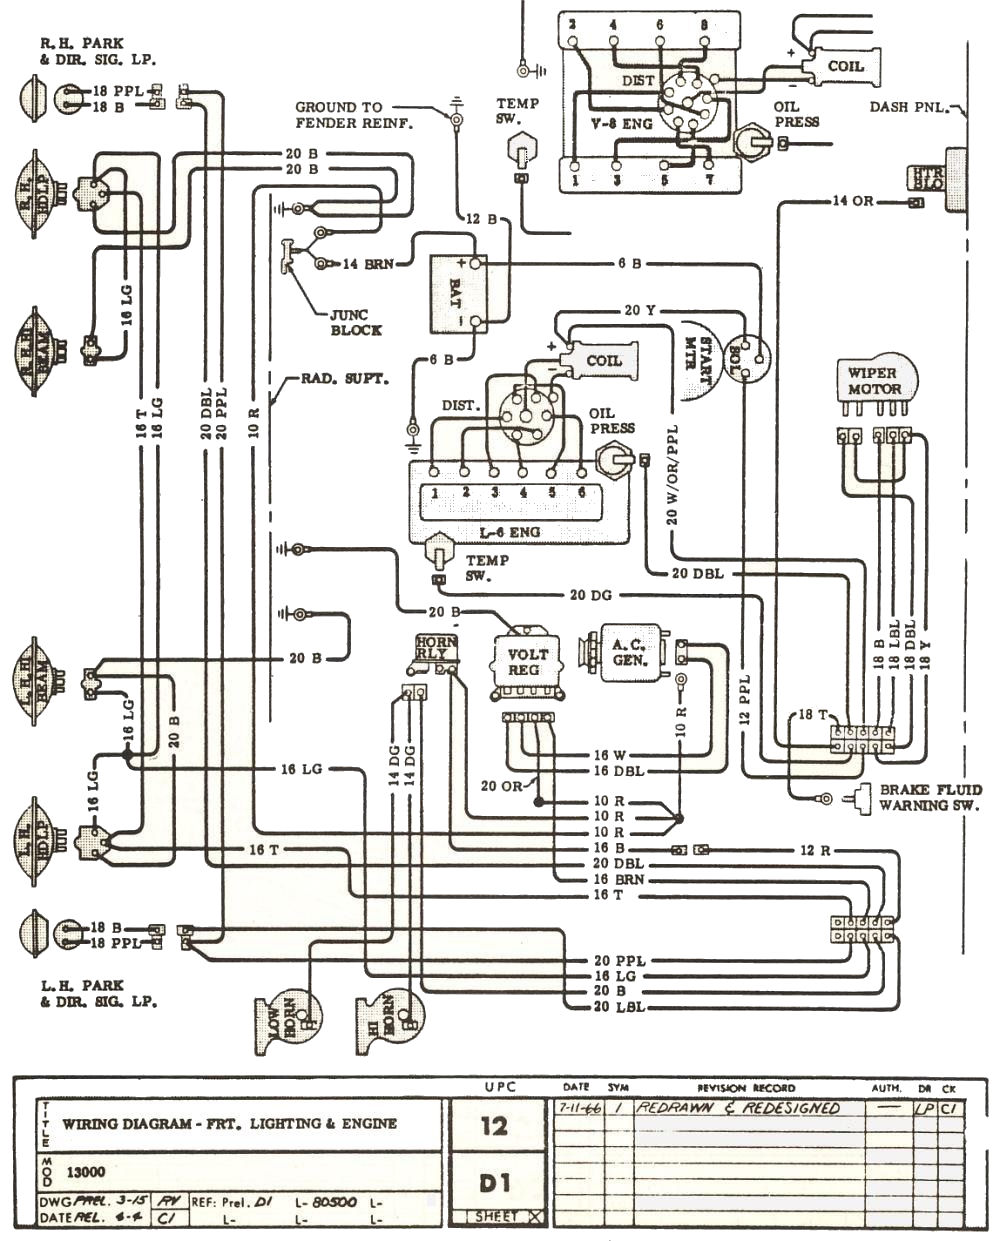 1971 Gto Wiring Harness Diagrams Scematic Painless Performance Diagram 1972 C10 1969 Simple Schema 1980 Source